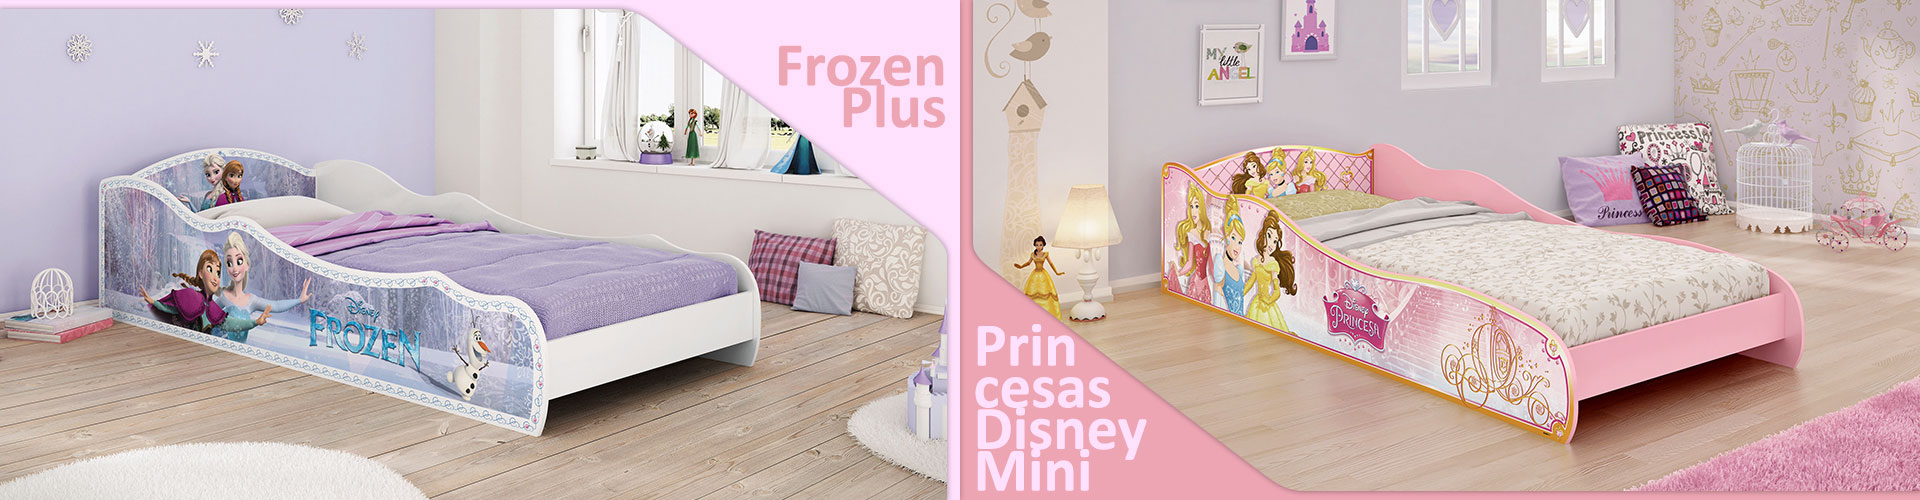 banner_personagens_frozen-plus_princesas-mini